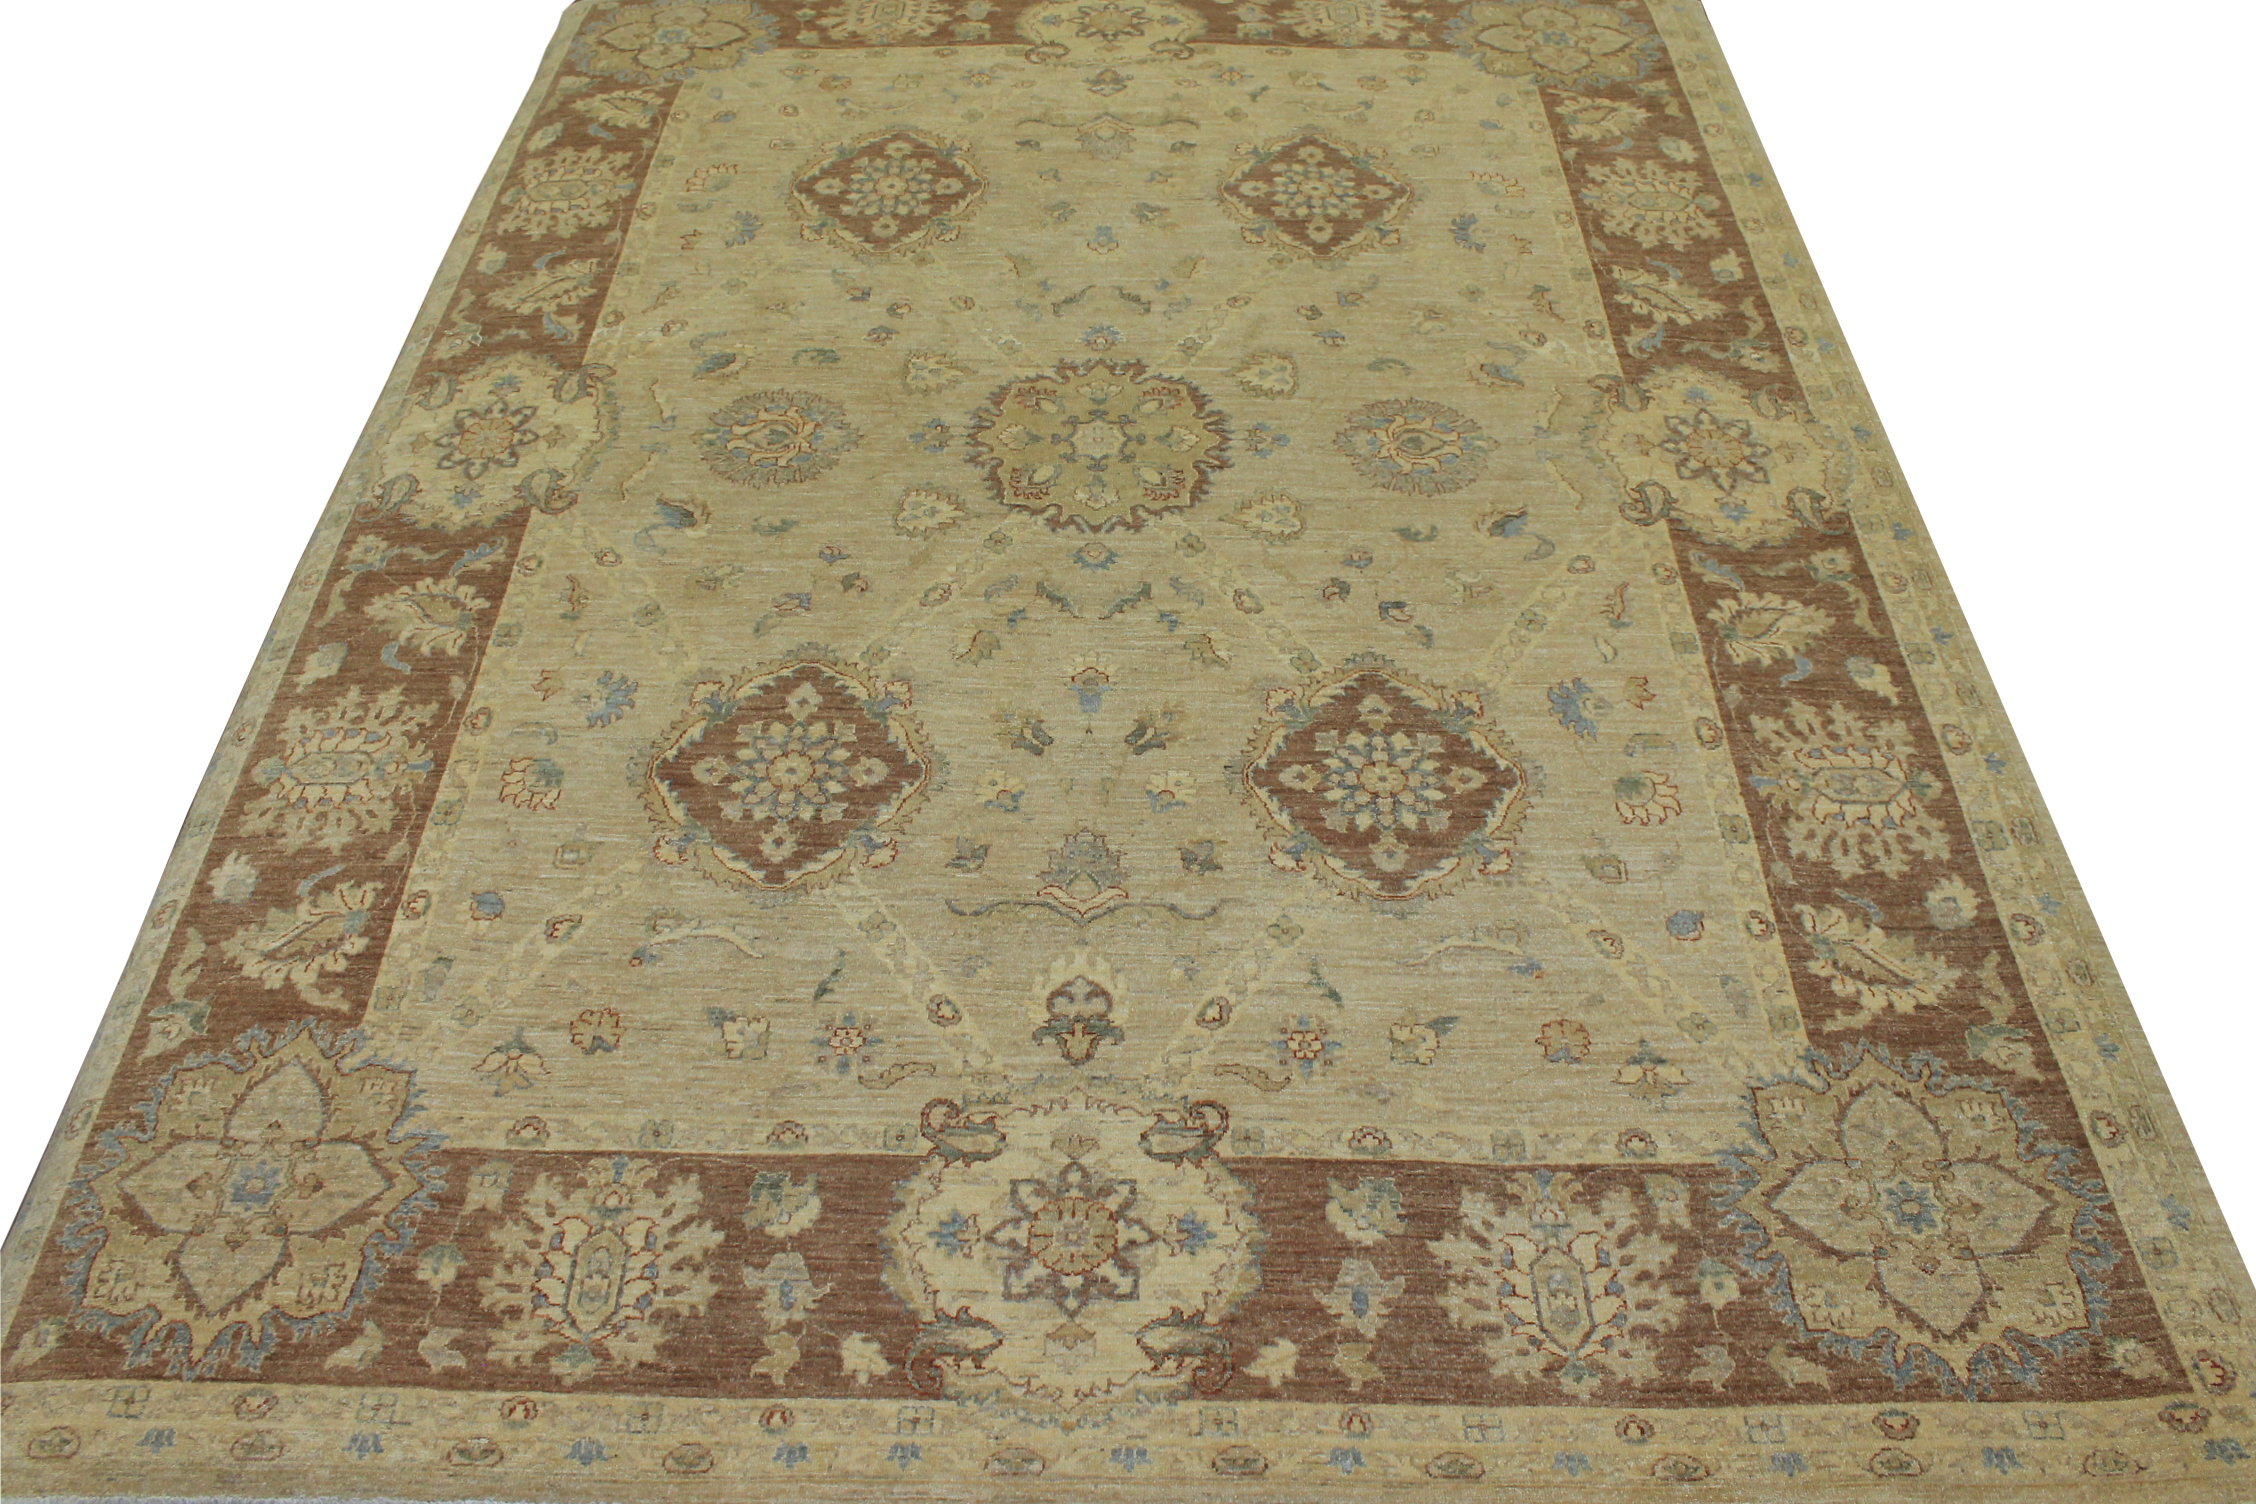 9x12 Peshawar Hand Knotted Wool Area Rug - MR11077